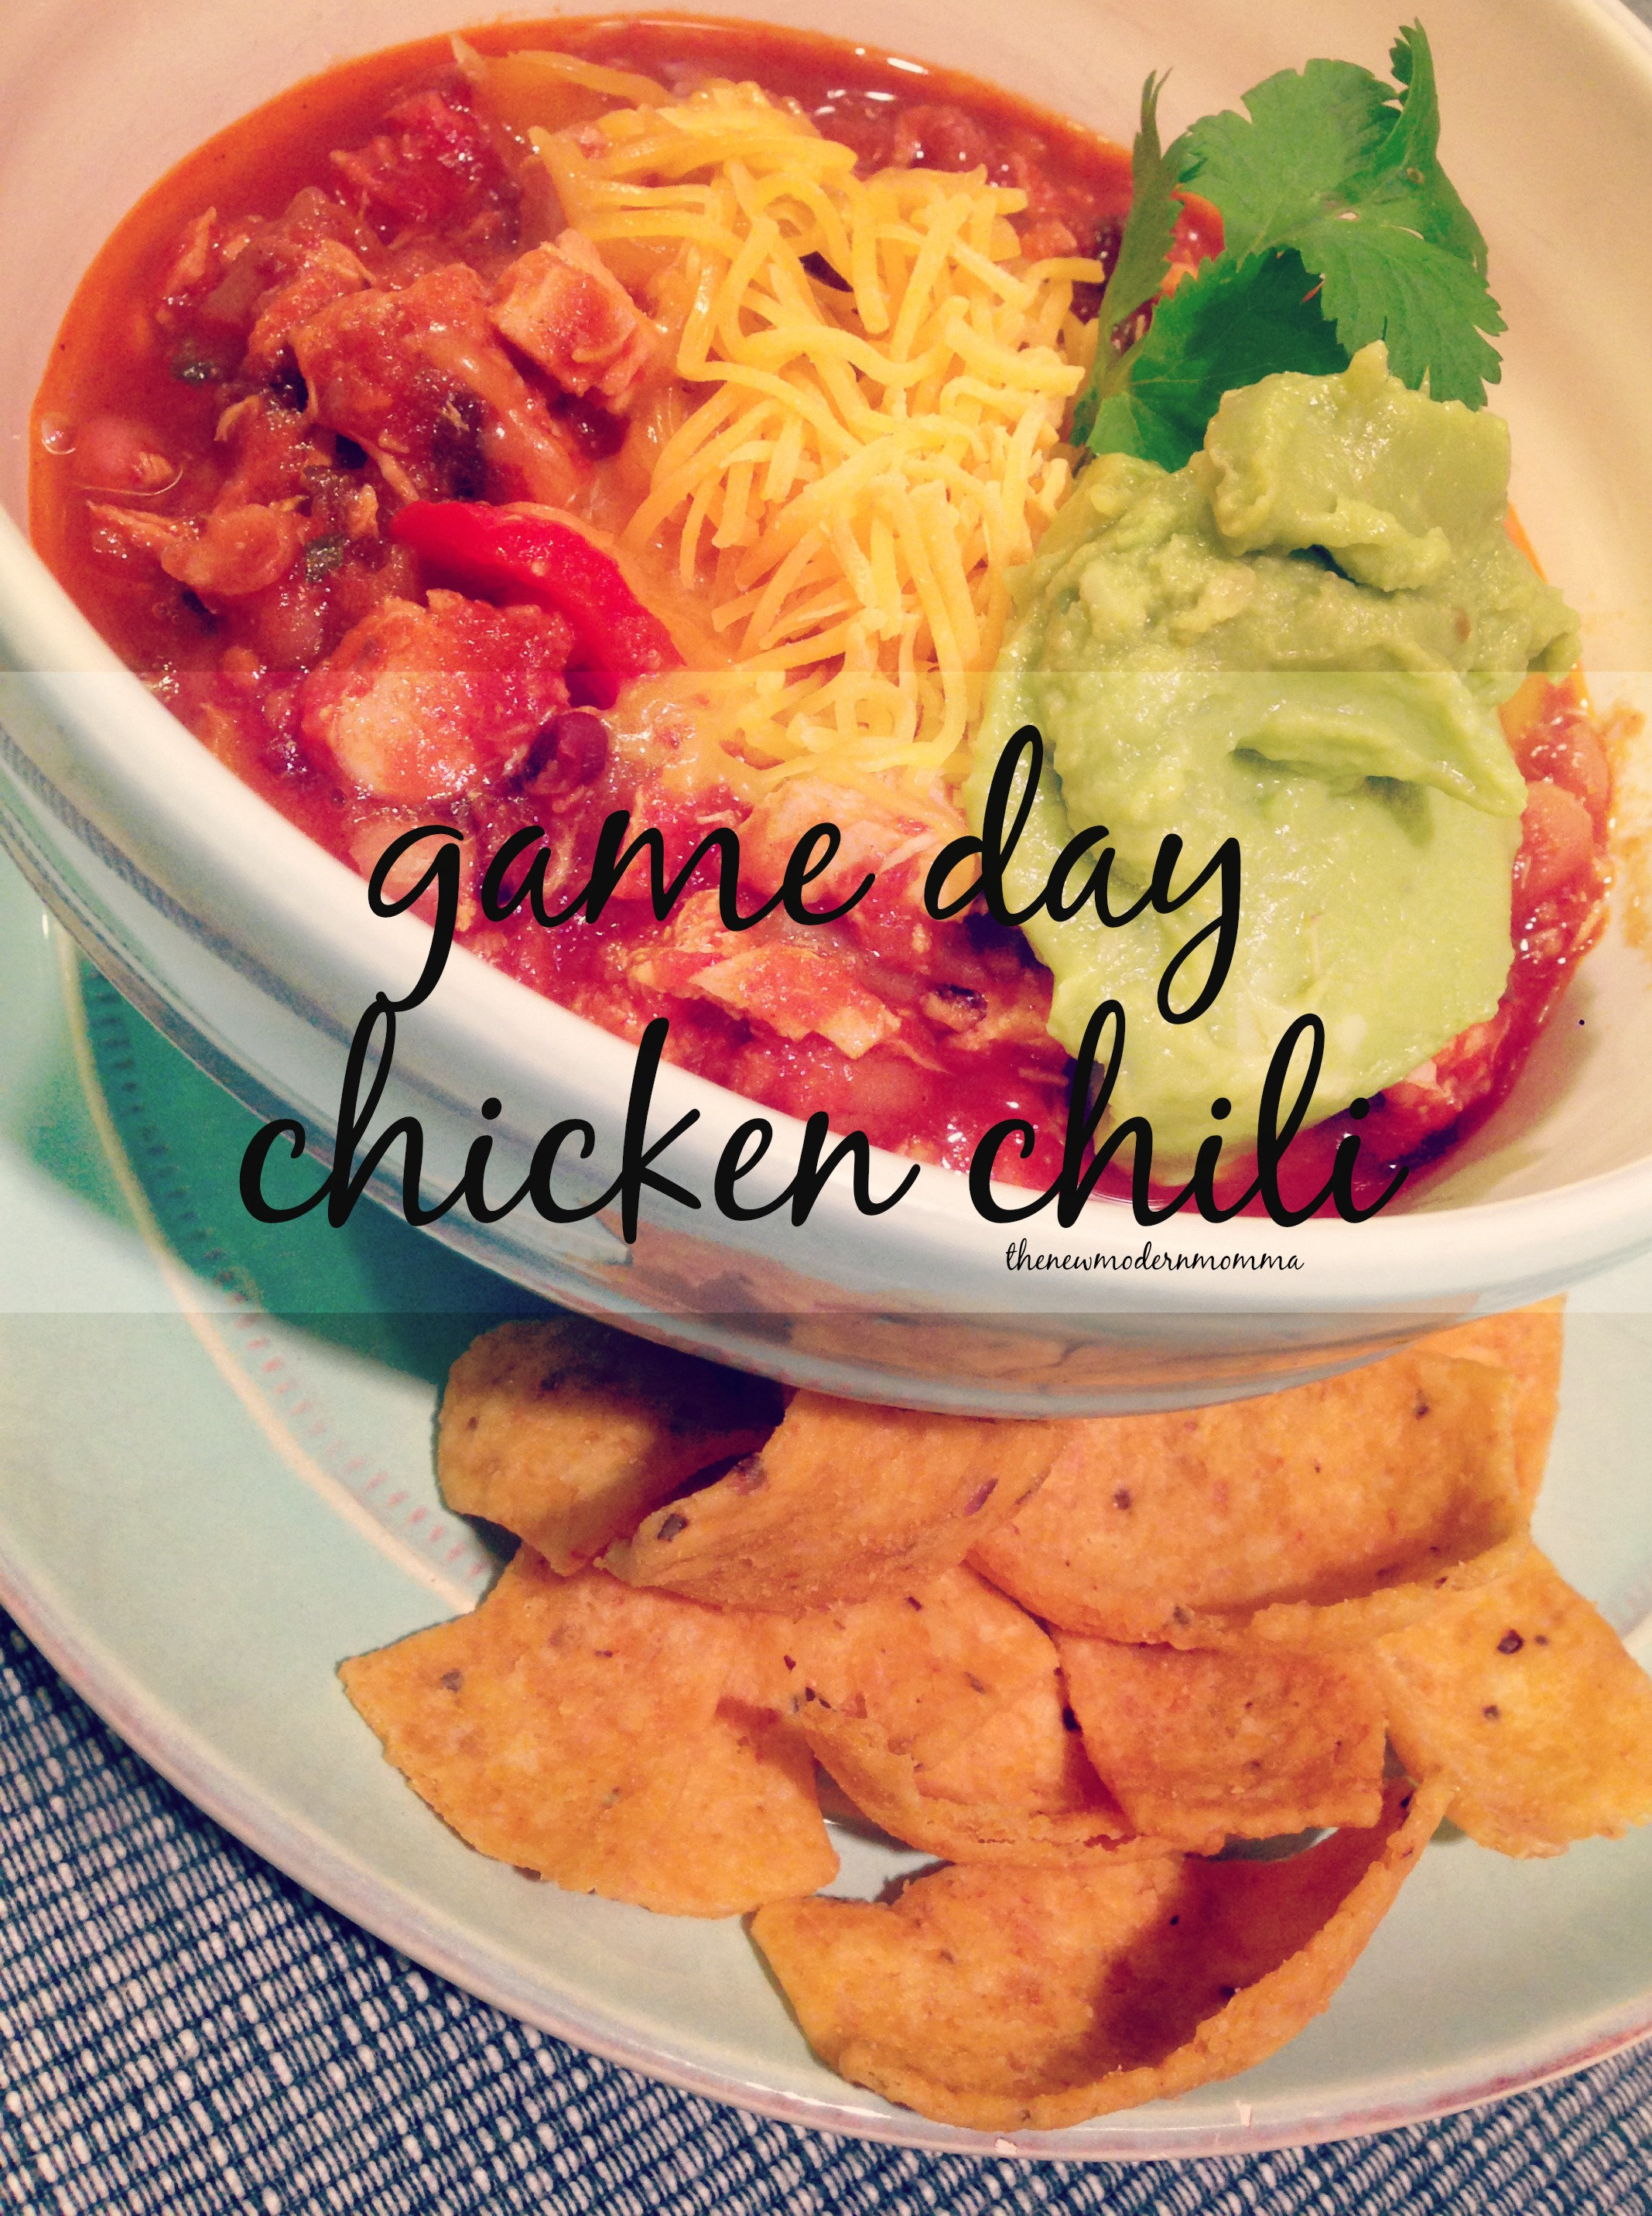 Party Favorites // Quick and Easy Game Day Chicken Chili! {Recipe}